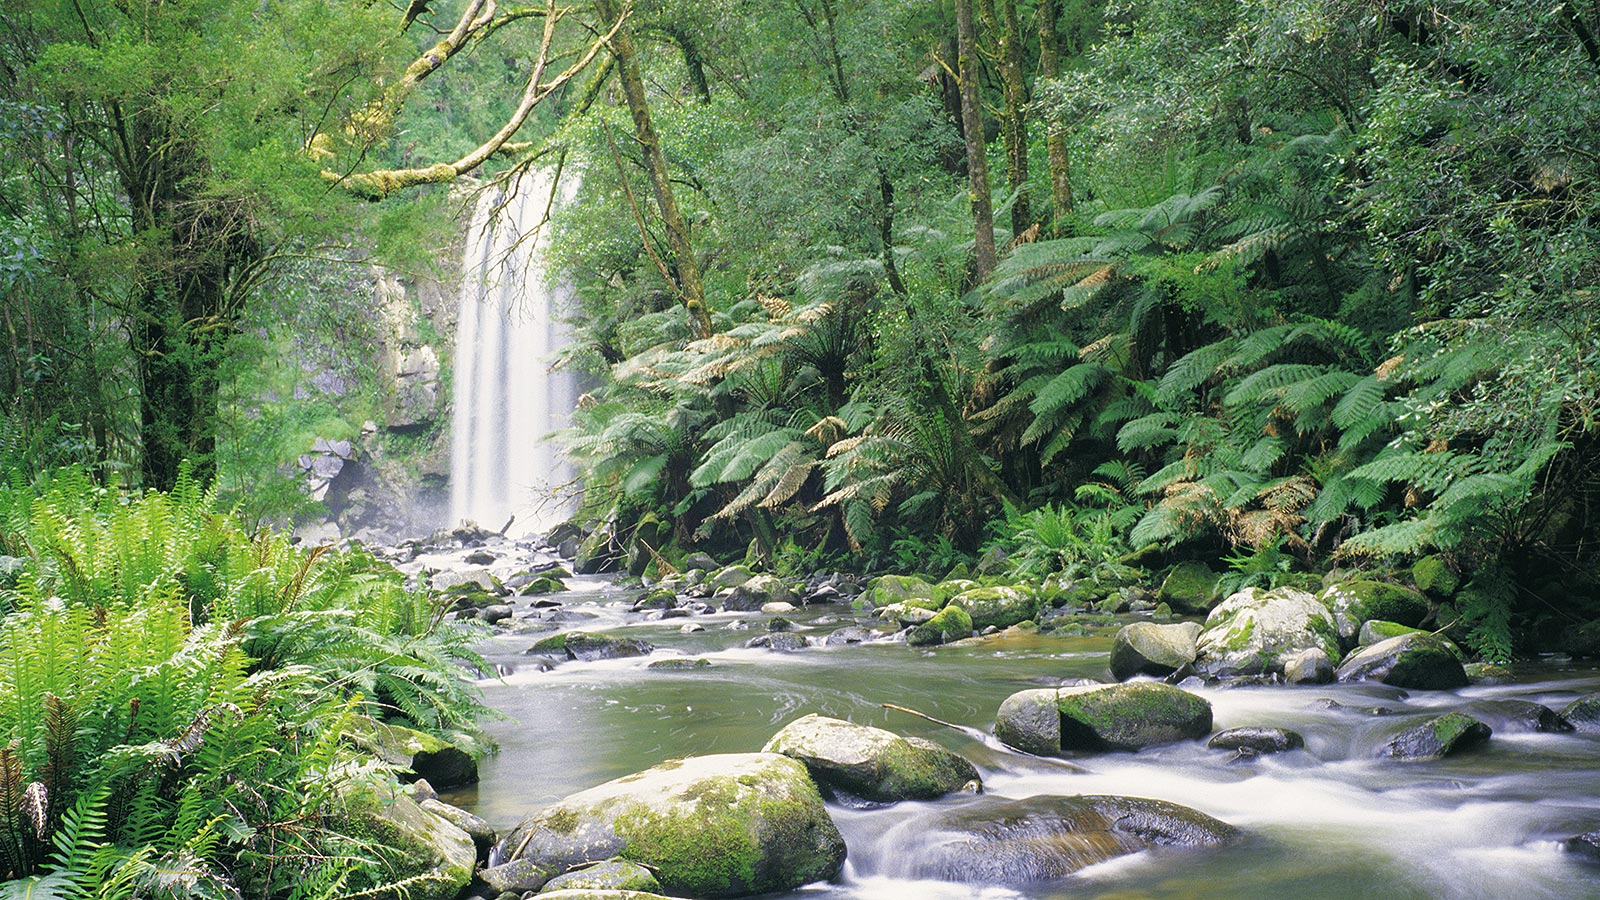 Hopetoun Falls, Beech Forest, Great Otway National Park, Great Ocean Road, Victoria, Australia. Photo: Holger Leue